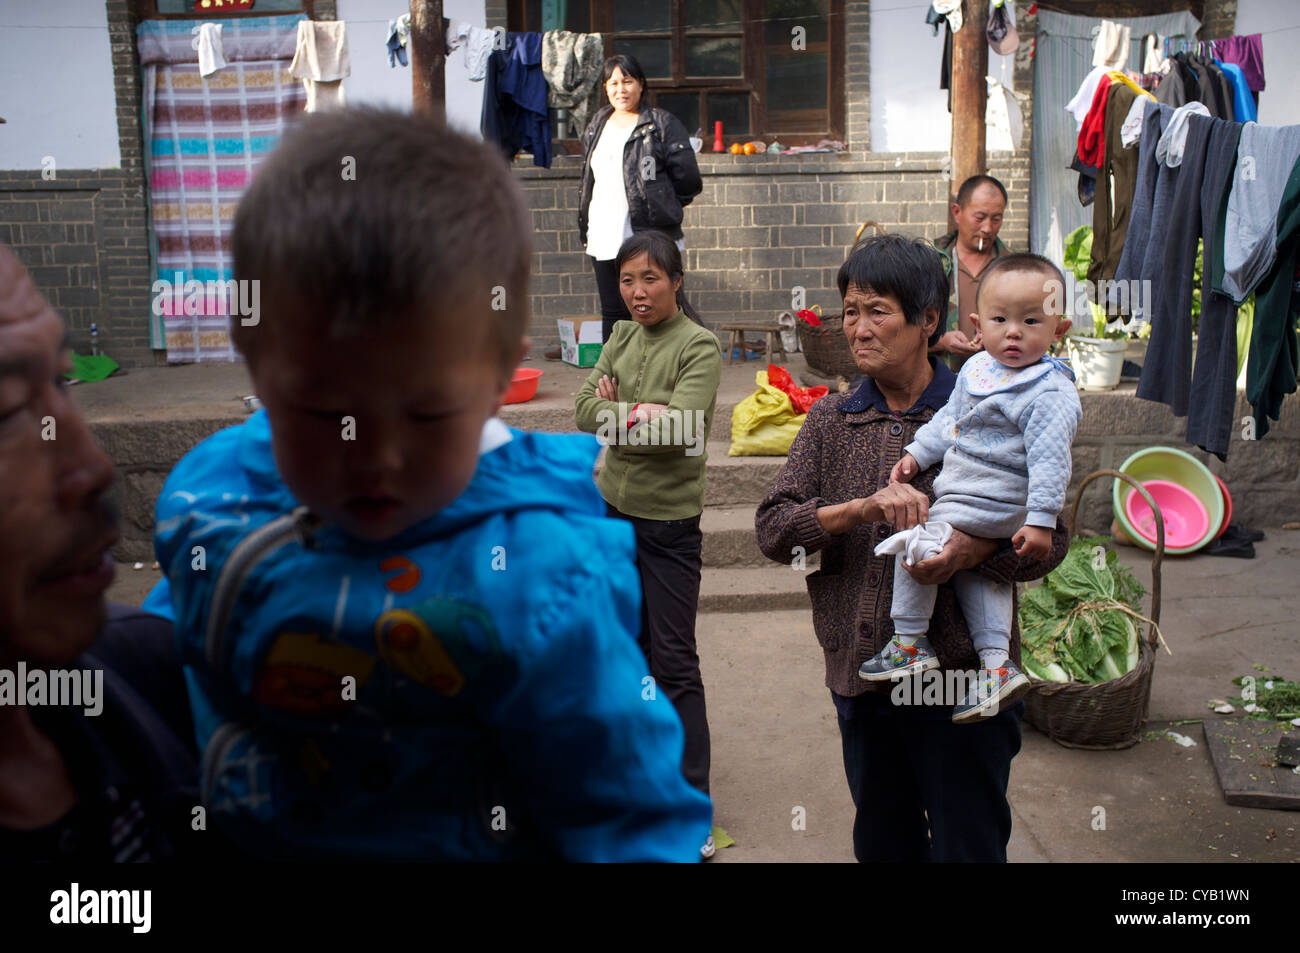 People in Laofen village, Pingshan - one of officially named Poverty County, Hebei province, China. 23-Oct-2012 - Stock Image